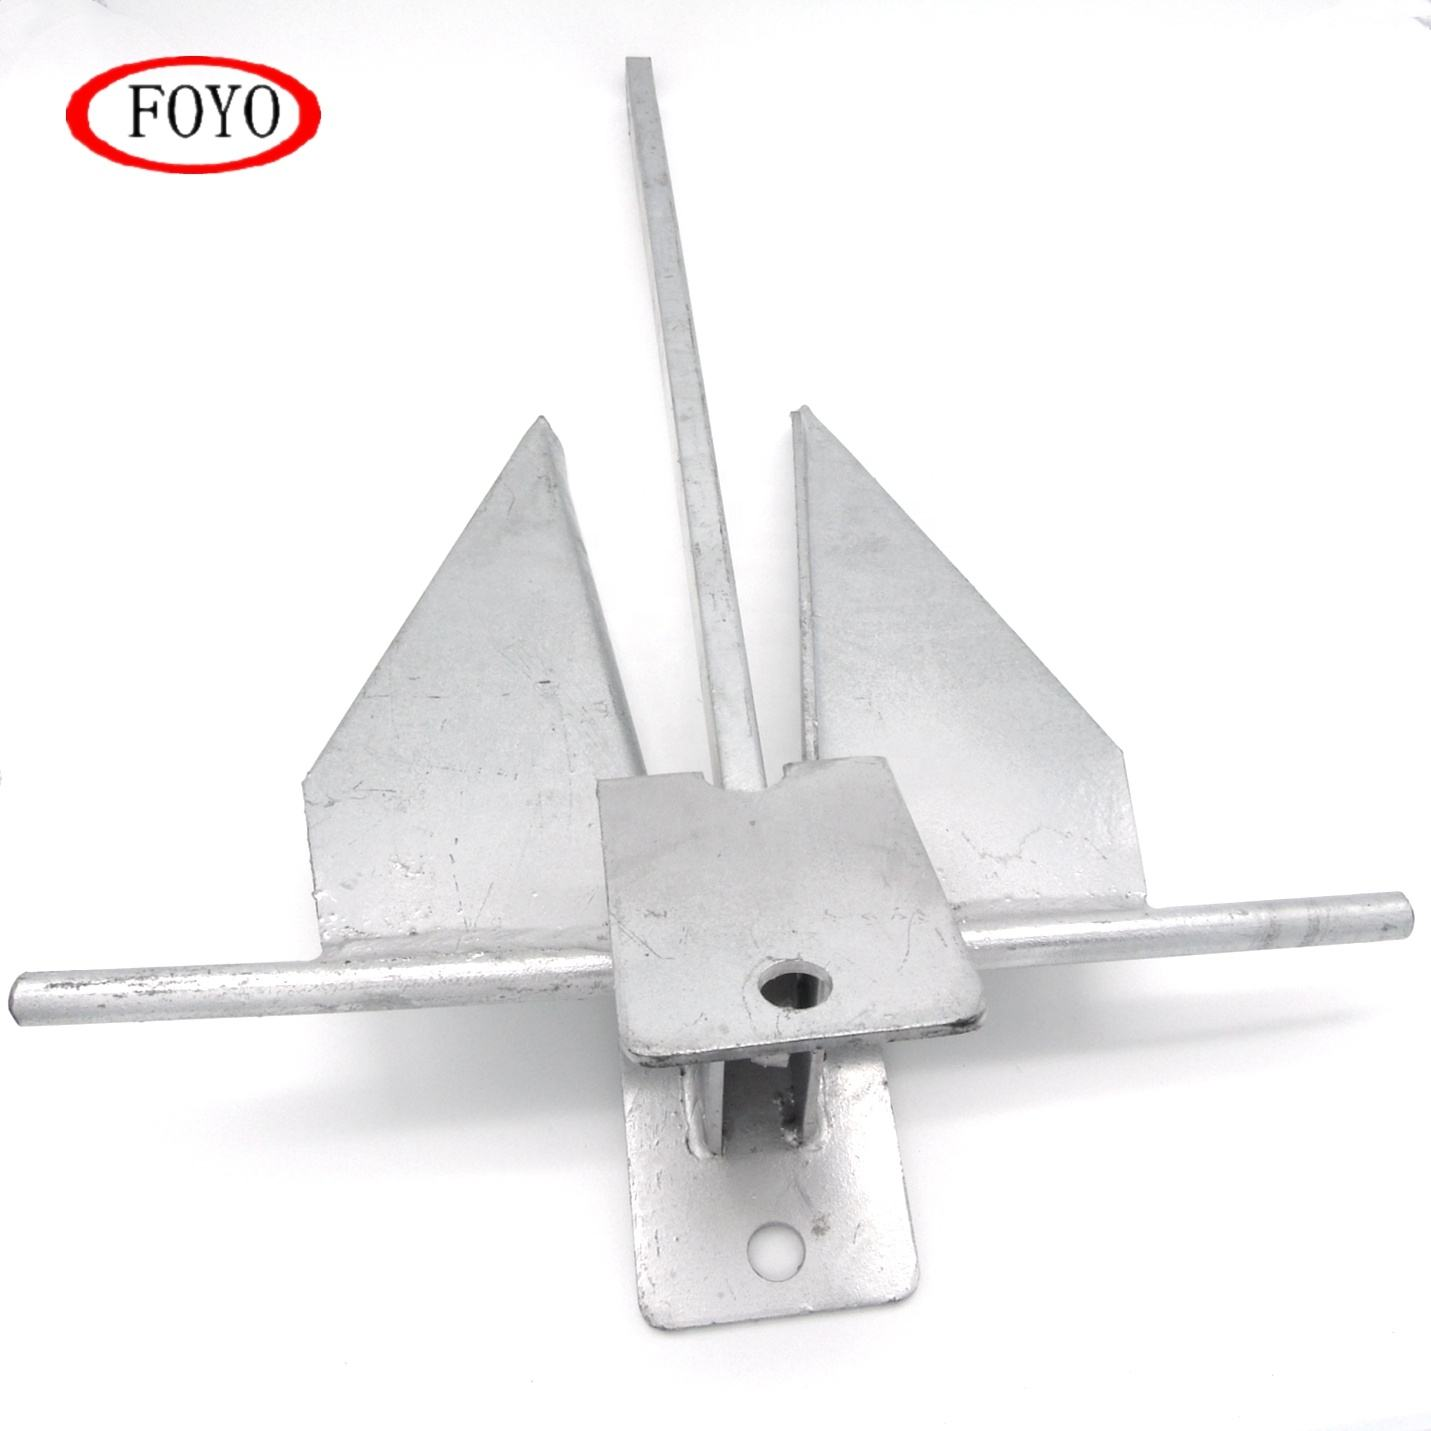 Foyo Brand Hot Sale Boat Accessories Marine Galvanize Danforth Fluke Anchor for Ship and Yacht and Kayak